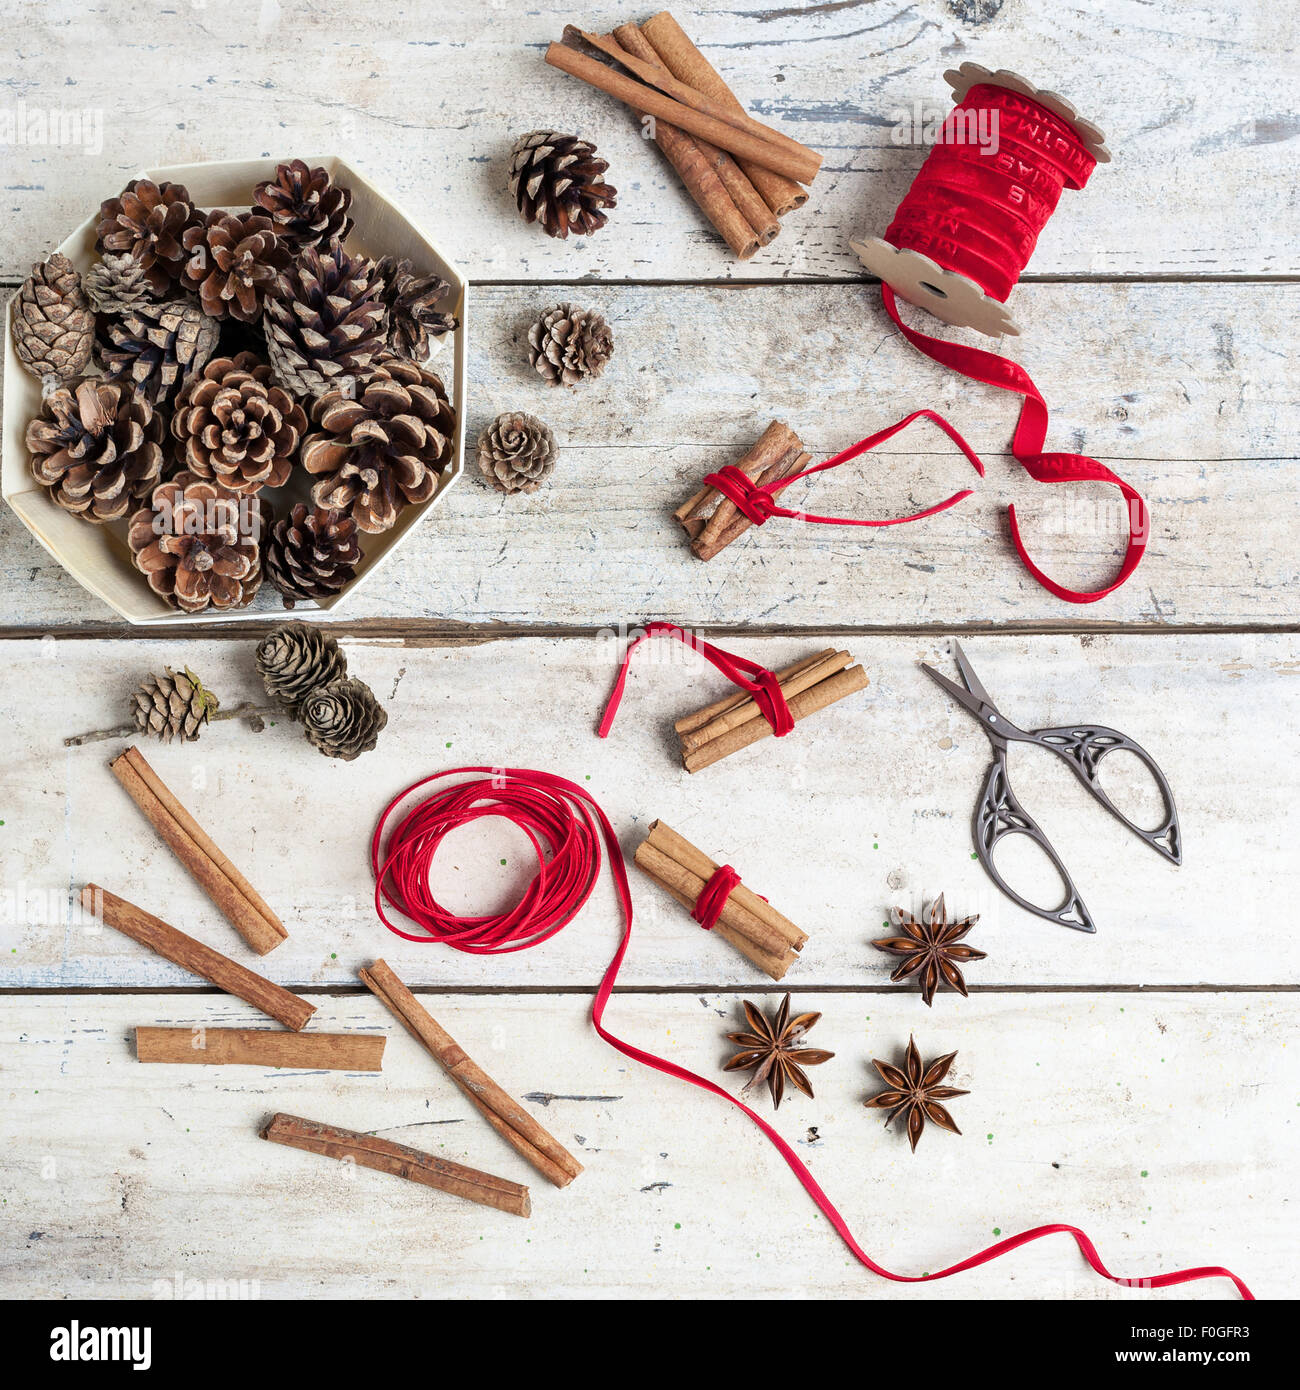 pinecones, spices and cinnamon bundles tied with red ribbon for Christmas - Stock Image